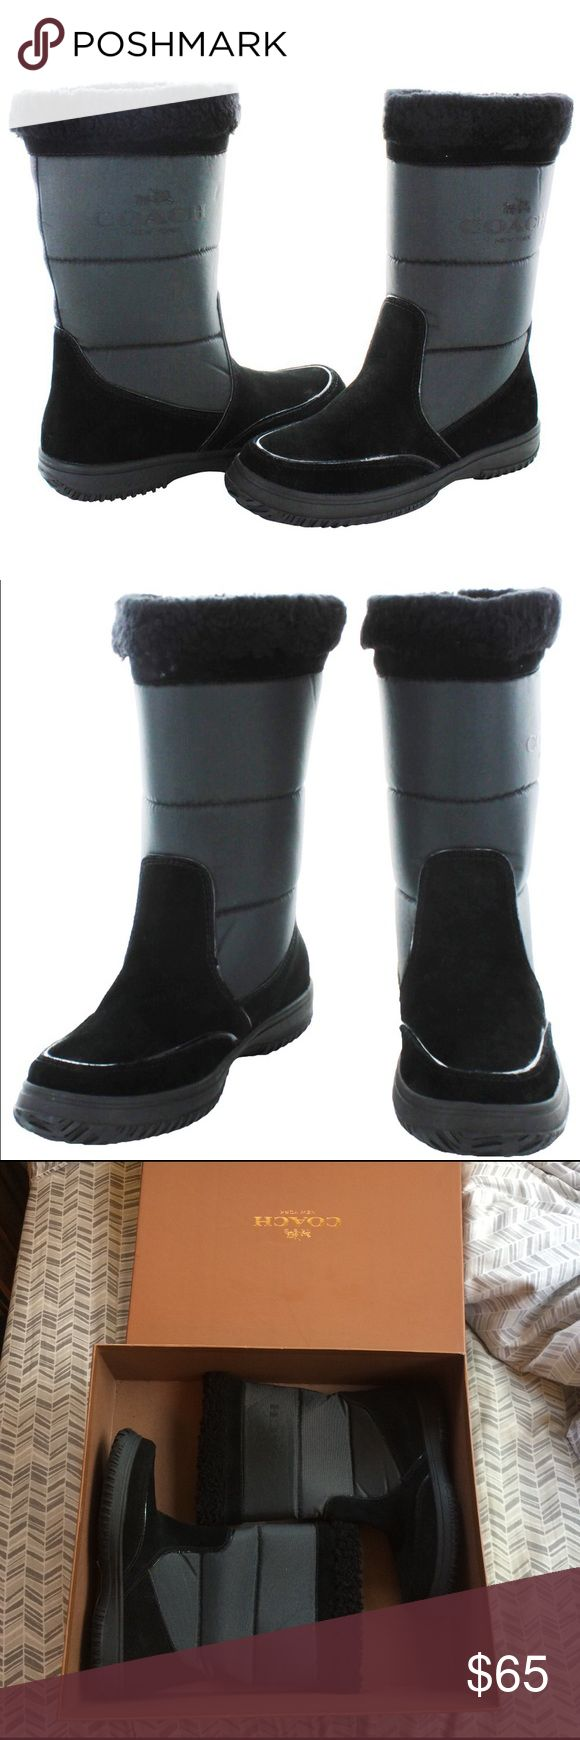 "NEW Coach Sherman cold weather boots New in box. 100% authentic. Black. Nylon, suede and shearling lining. Logo on outside of boot. Super warm and comfortable. Height 10"". Circumference 14.5-15"". Priced to sell so price pretty firm!!! Coach Shoes Winter & Rain Boots"